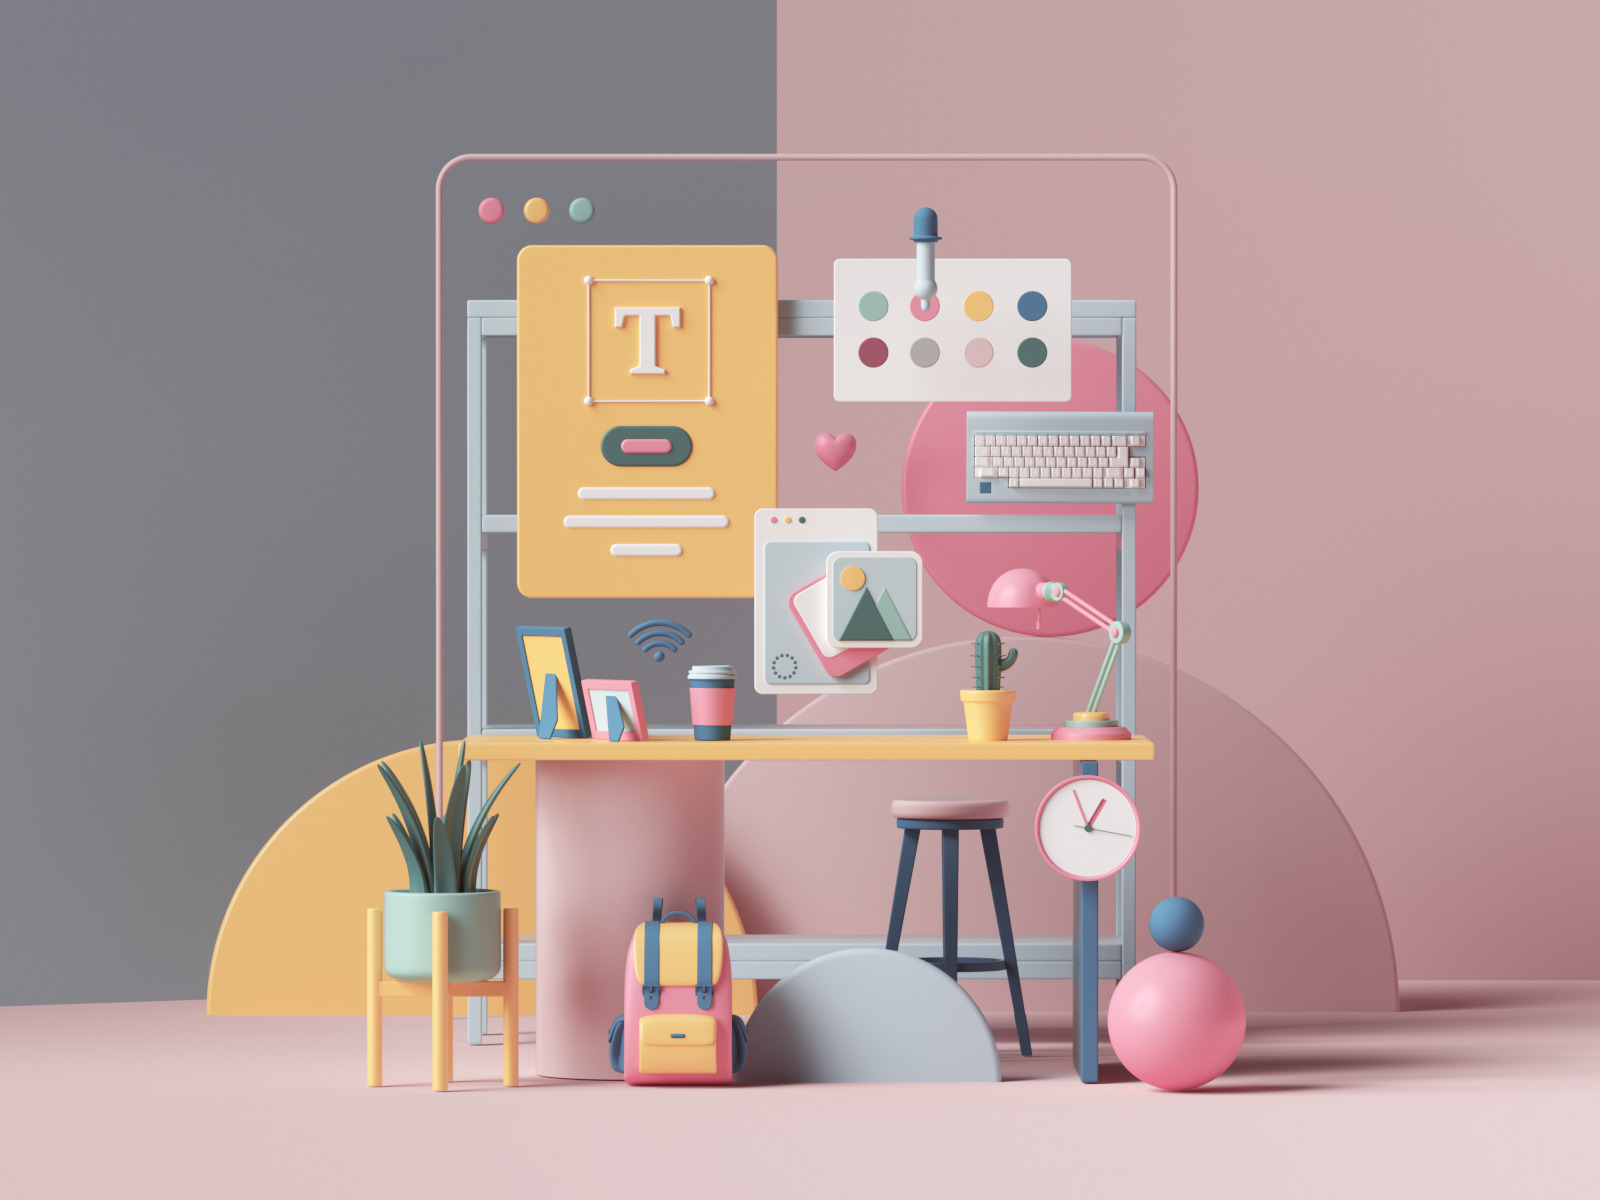 3d illustration workspace